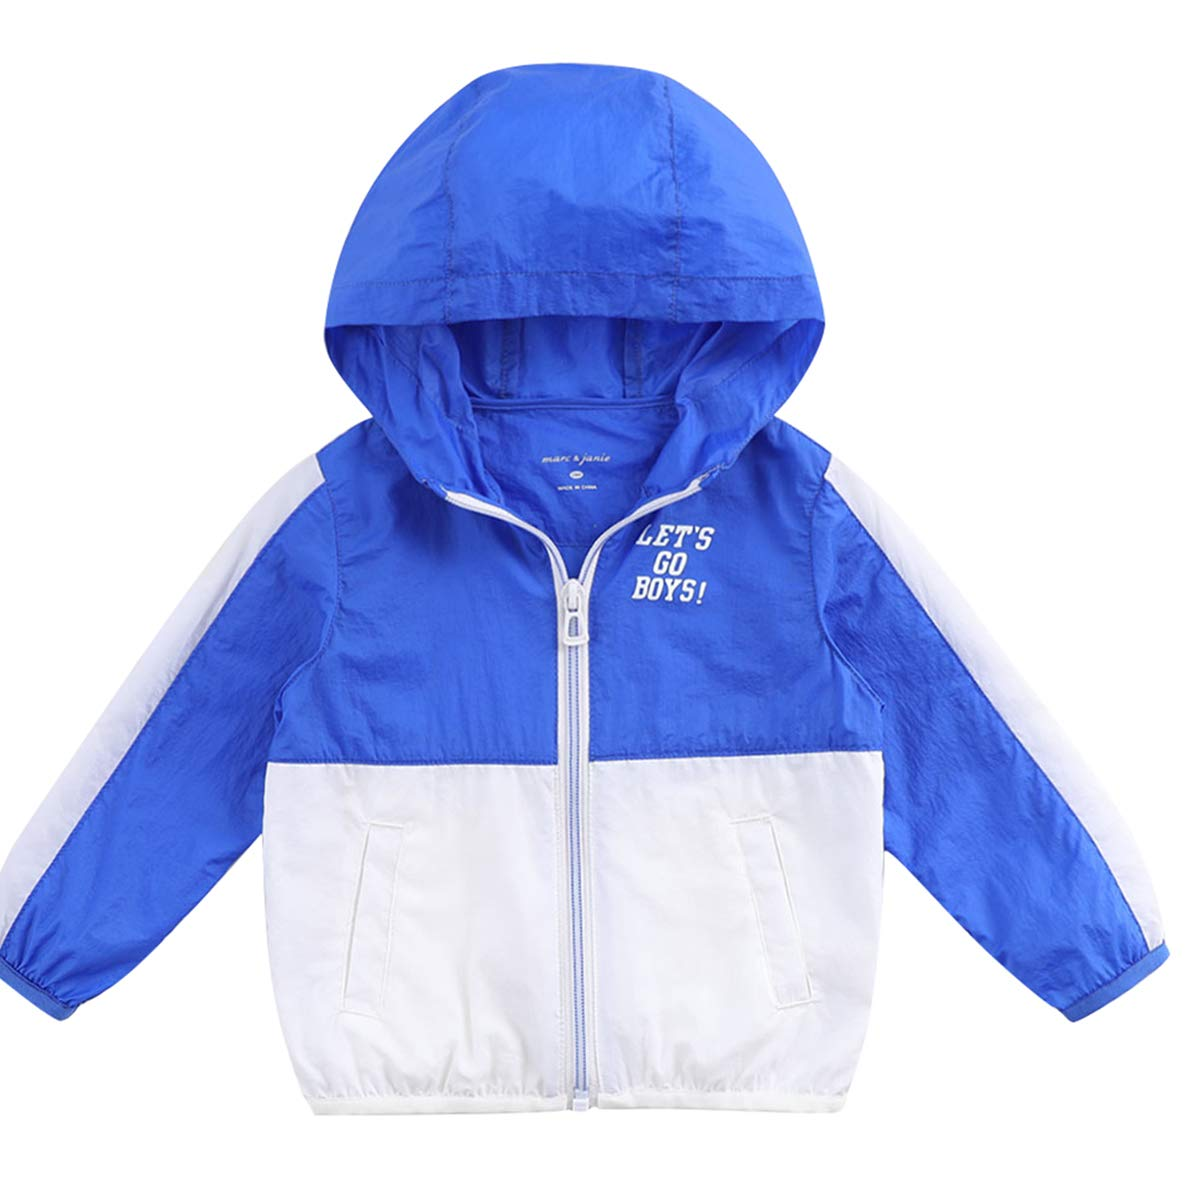 marc janie Boys Color Block Sun Protective Hooded Cover-Up Coat UPF 50+